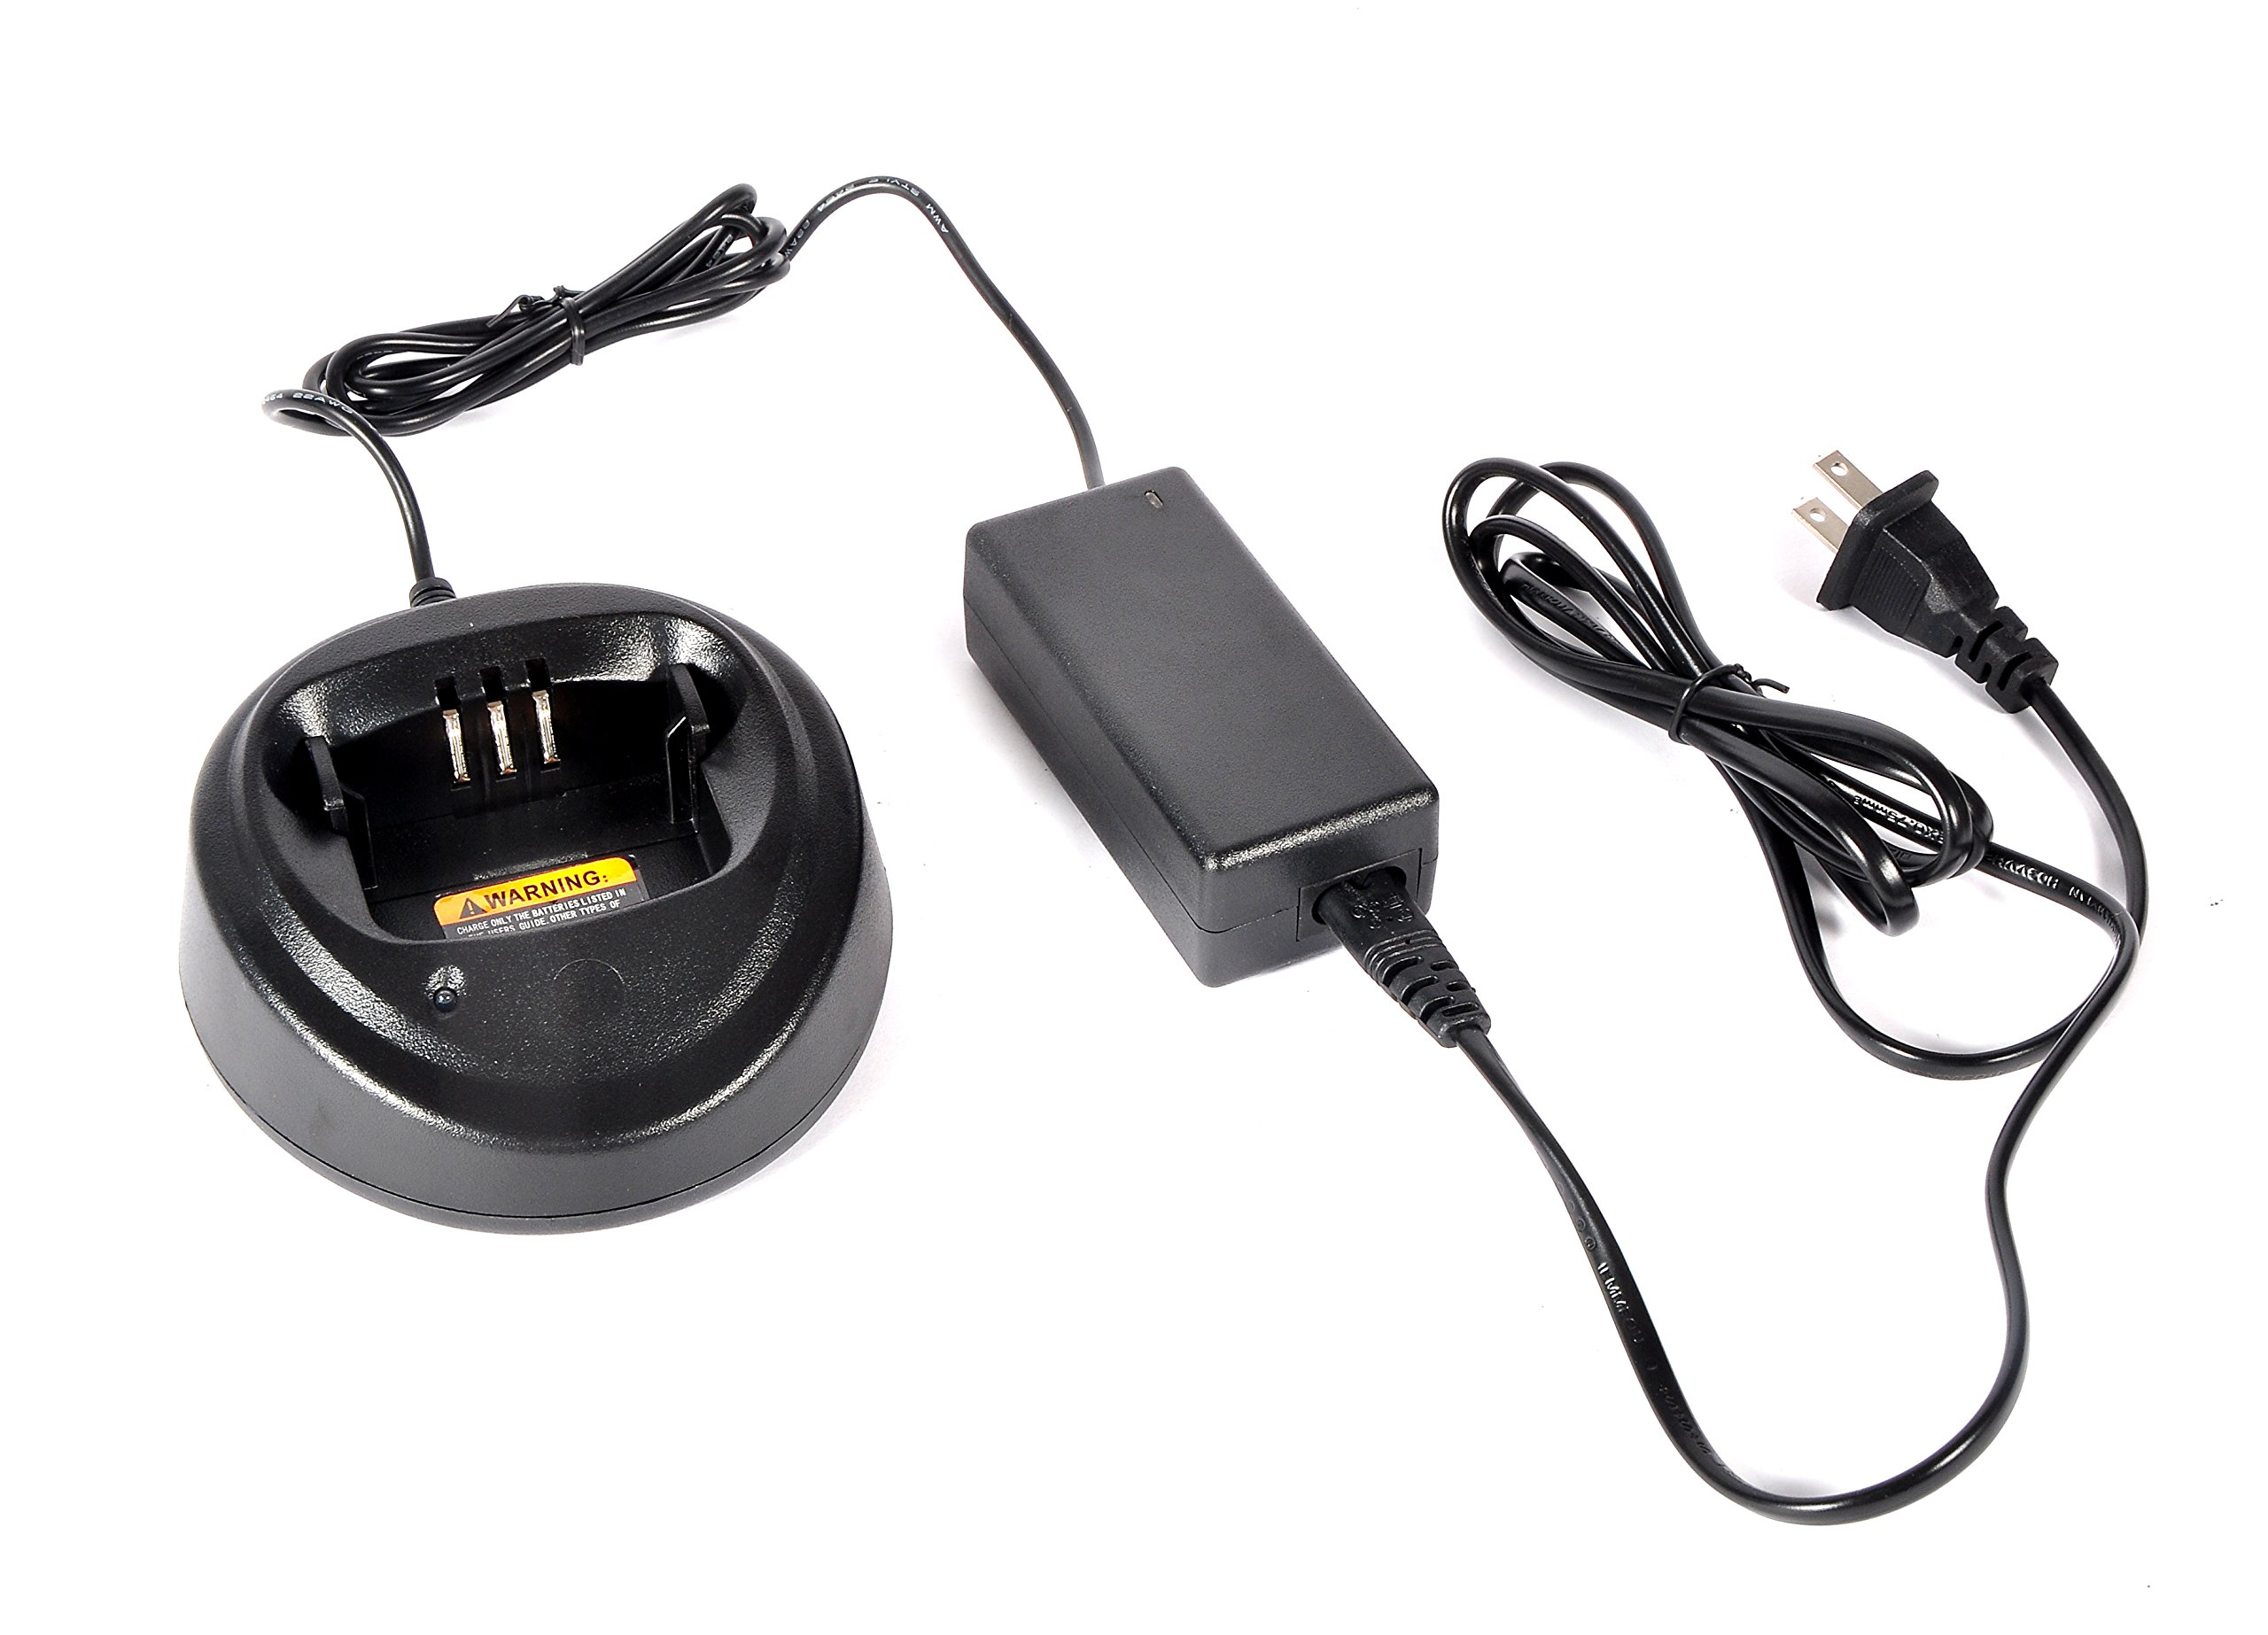 Heyrtz Replacement WPLN4137 PMP4137A Charging Station,Two-Way Radio Rapid Battery Charger Base with 100V-240V Power Adapter for Motorola CP040 CP140 CP150 CP160 CP180 CP200 EP450 PR400 Walkie Talkies